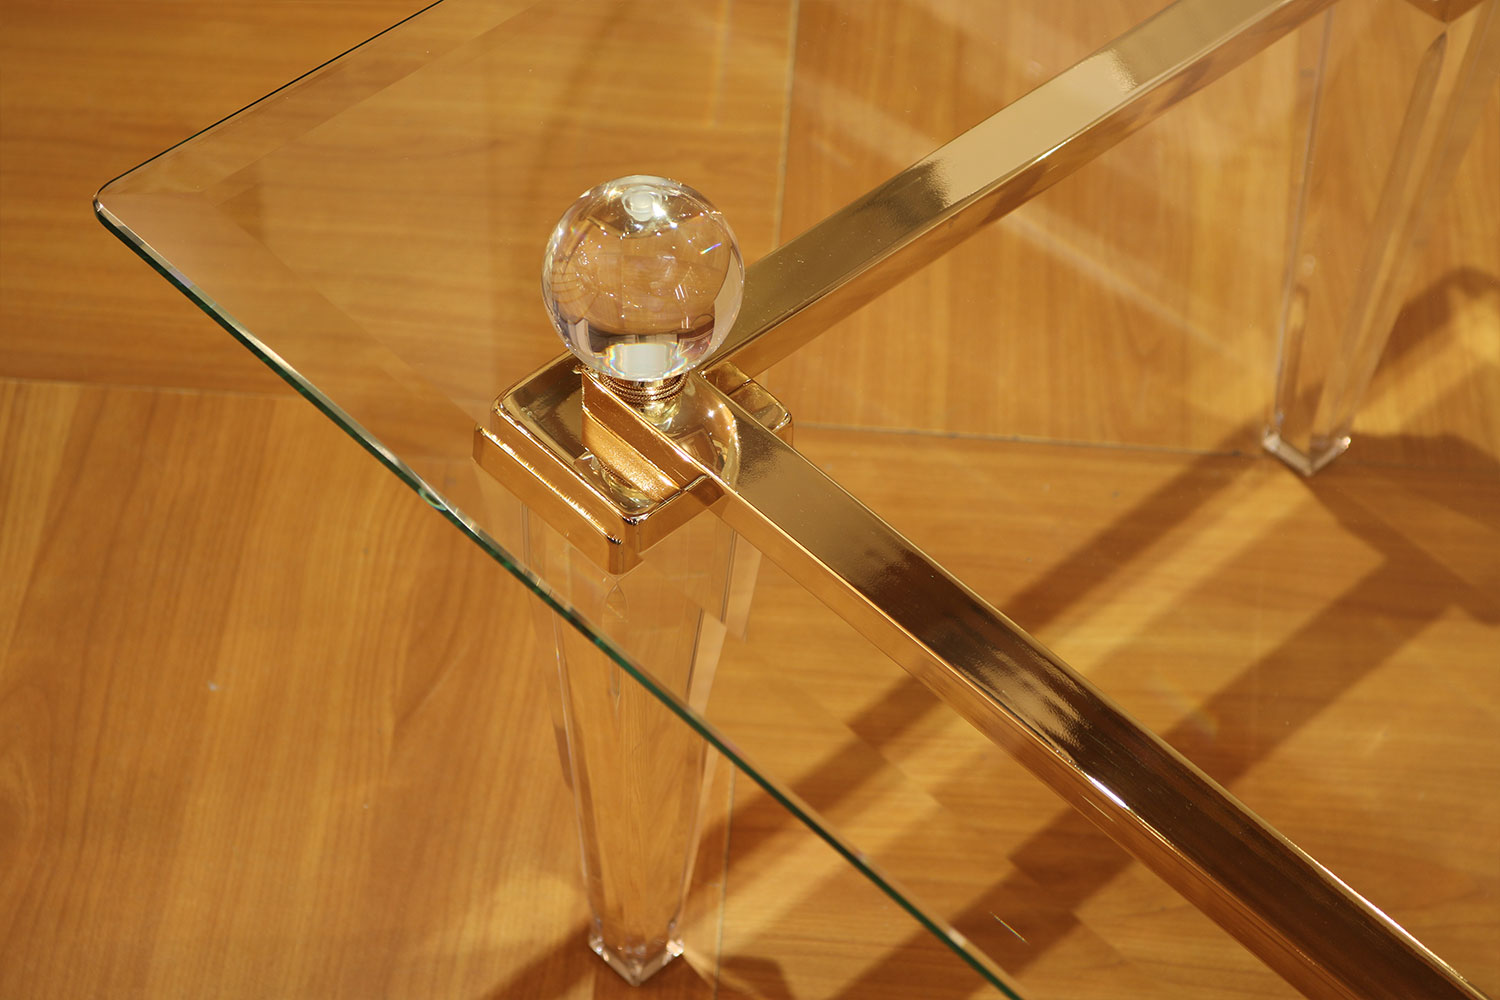 Table basse transparente, métacrylate  Madelia Table basse  transparente Madelia - Mobilier de luxe Paris